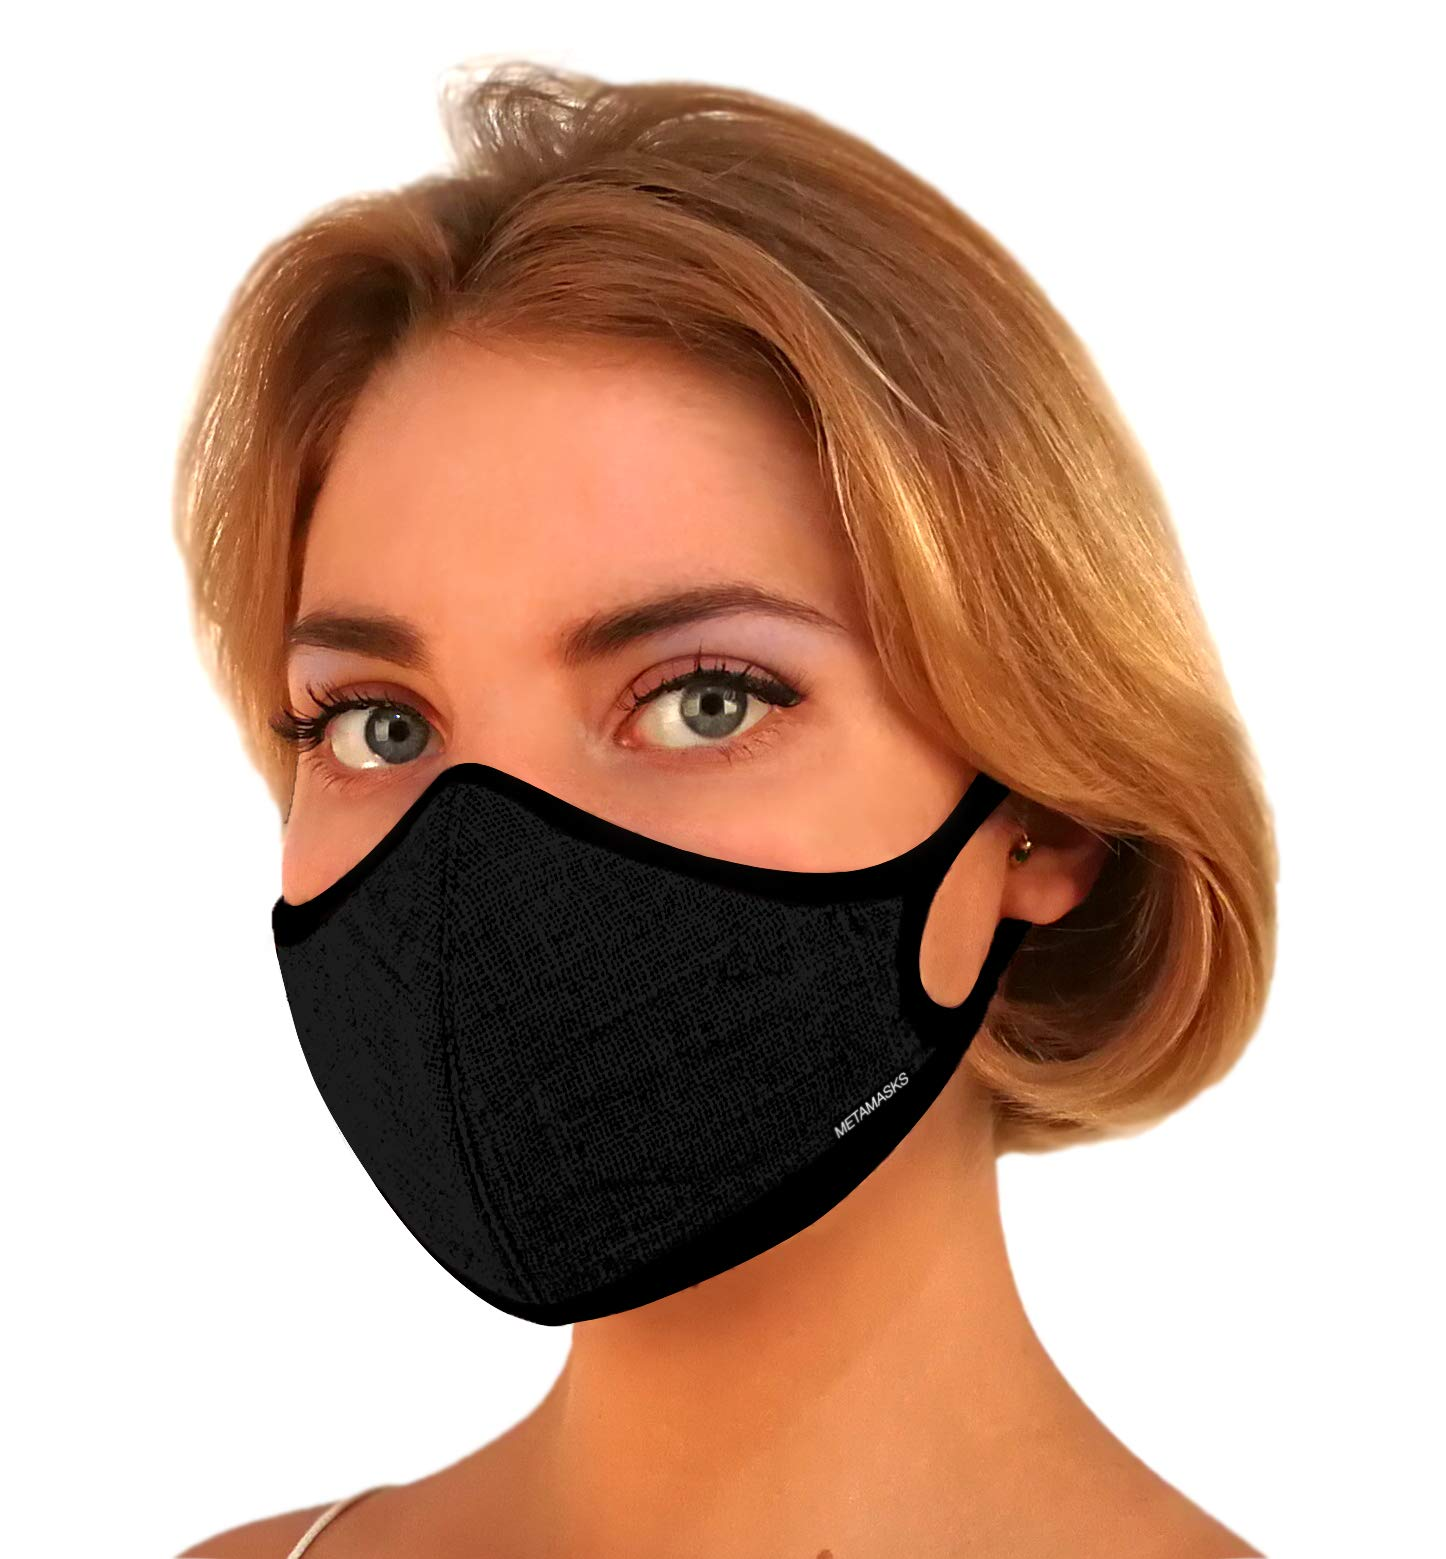 Air Pollution Face Mask For Dust N99 N95 Pollution Respirator Fashion Breathing Masks Filter Carbon Filtration Protection Exhaust Pollen Allergy Washable PM2.5 (Large, Linen - Black) by Metamasks